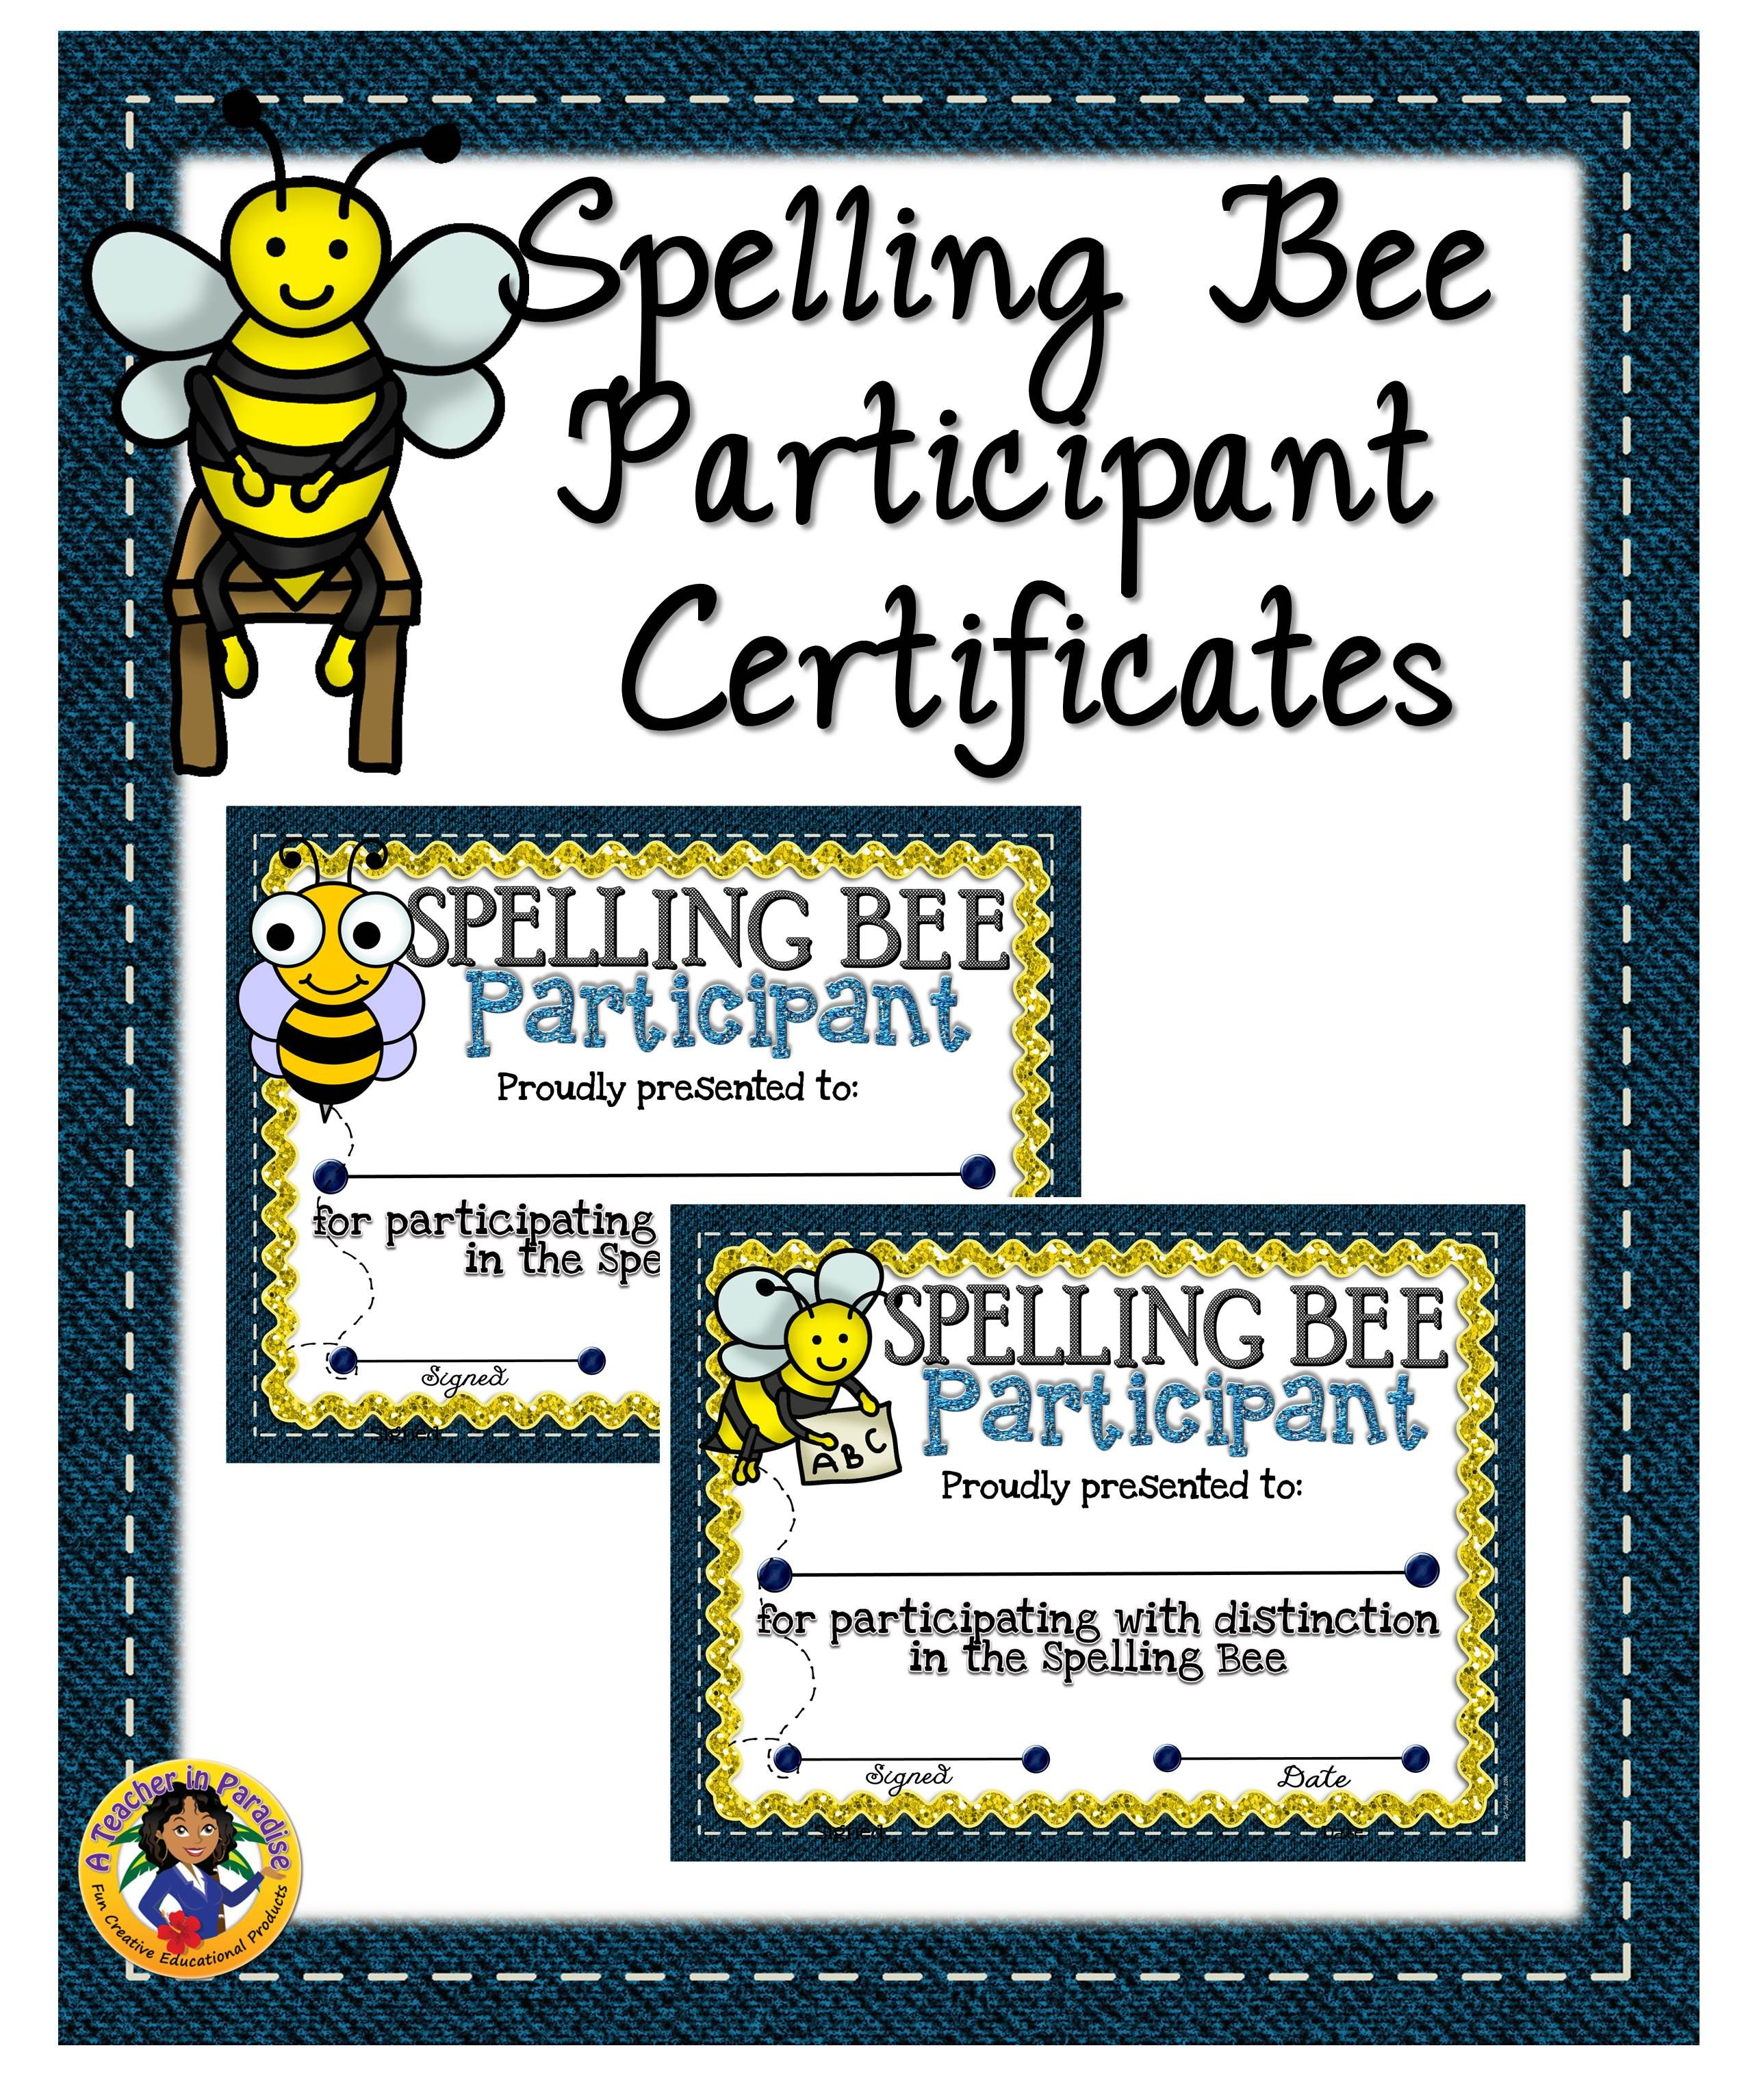 Spelling Bee Participant Certificates | Pinterest | Certificate ...